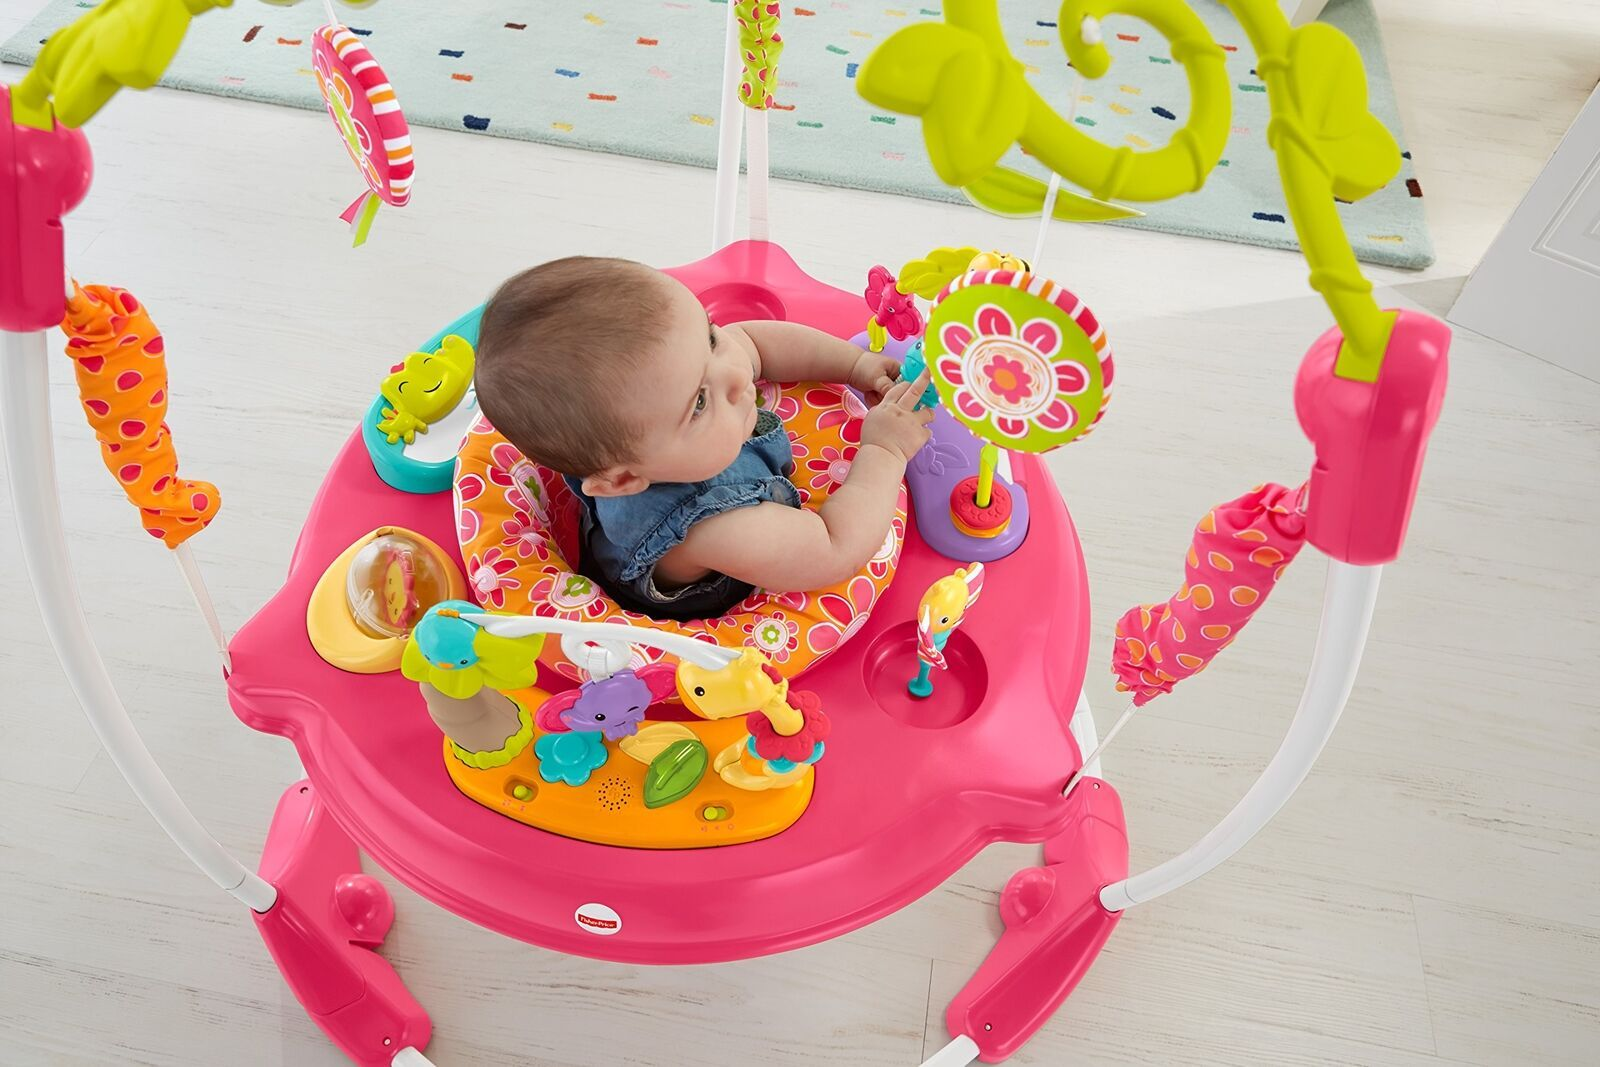 Fisher Price Jumperoo Baby Girl Jumper Bouncer Activity Seat Toys Sound Pink Col Best Baby Toys Jumperoo Baby Activity Center